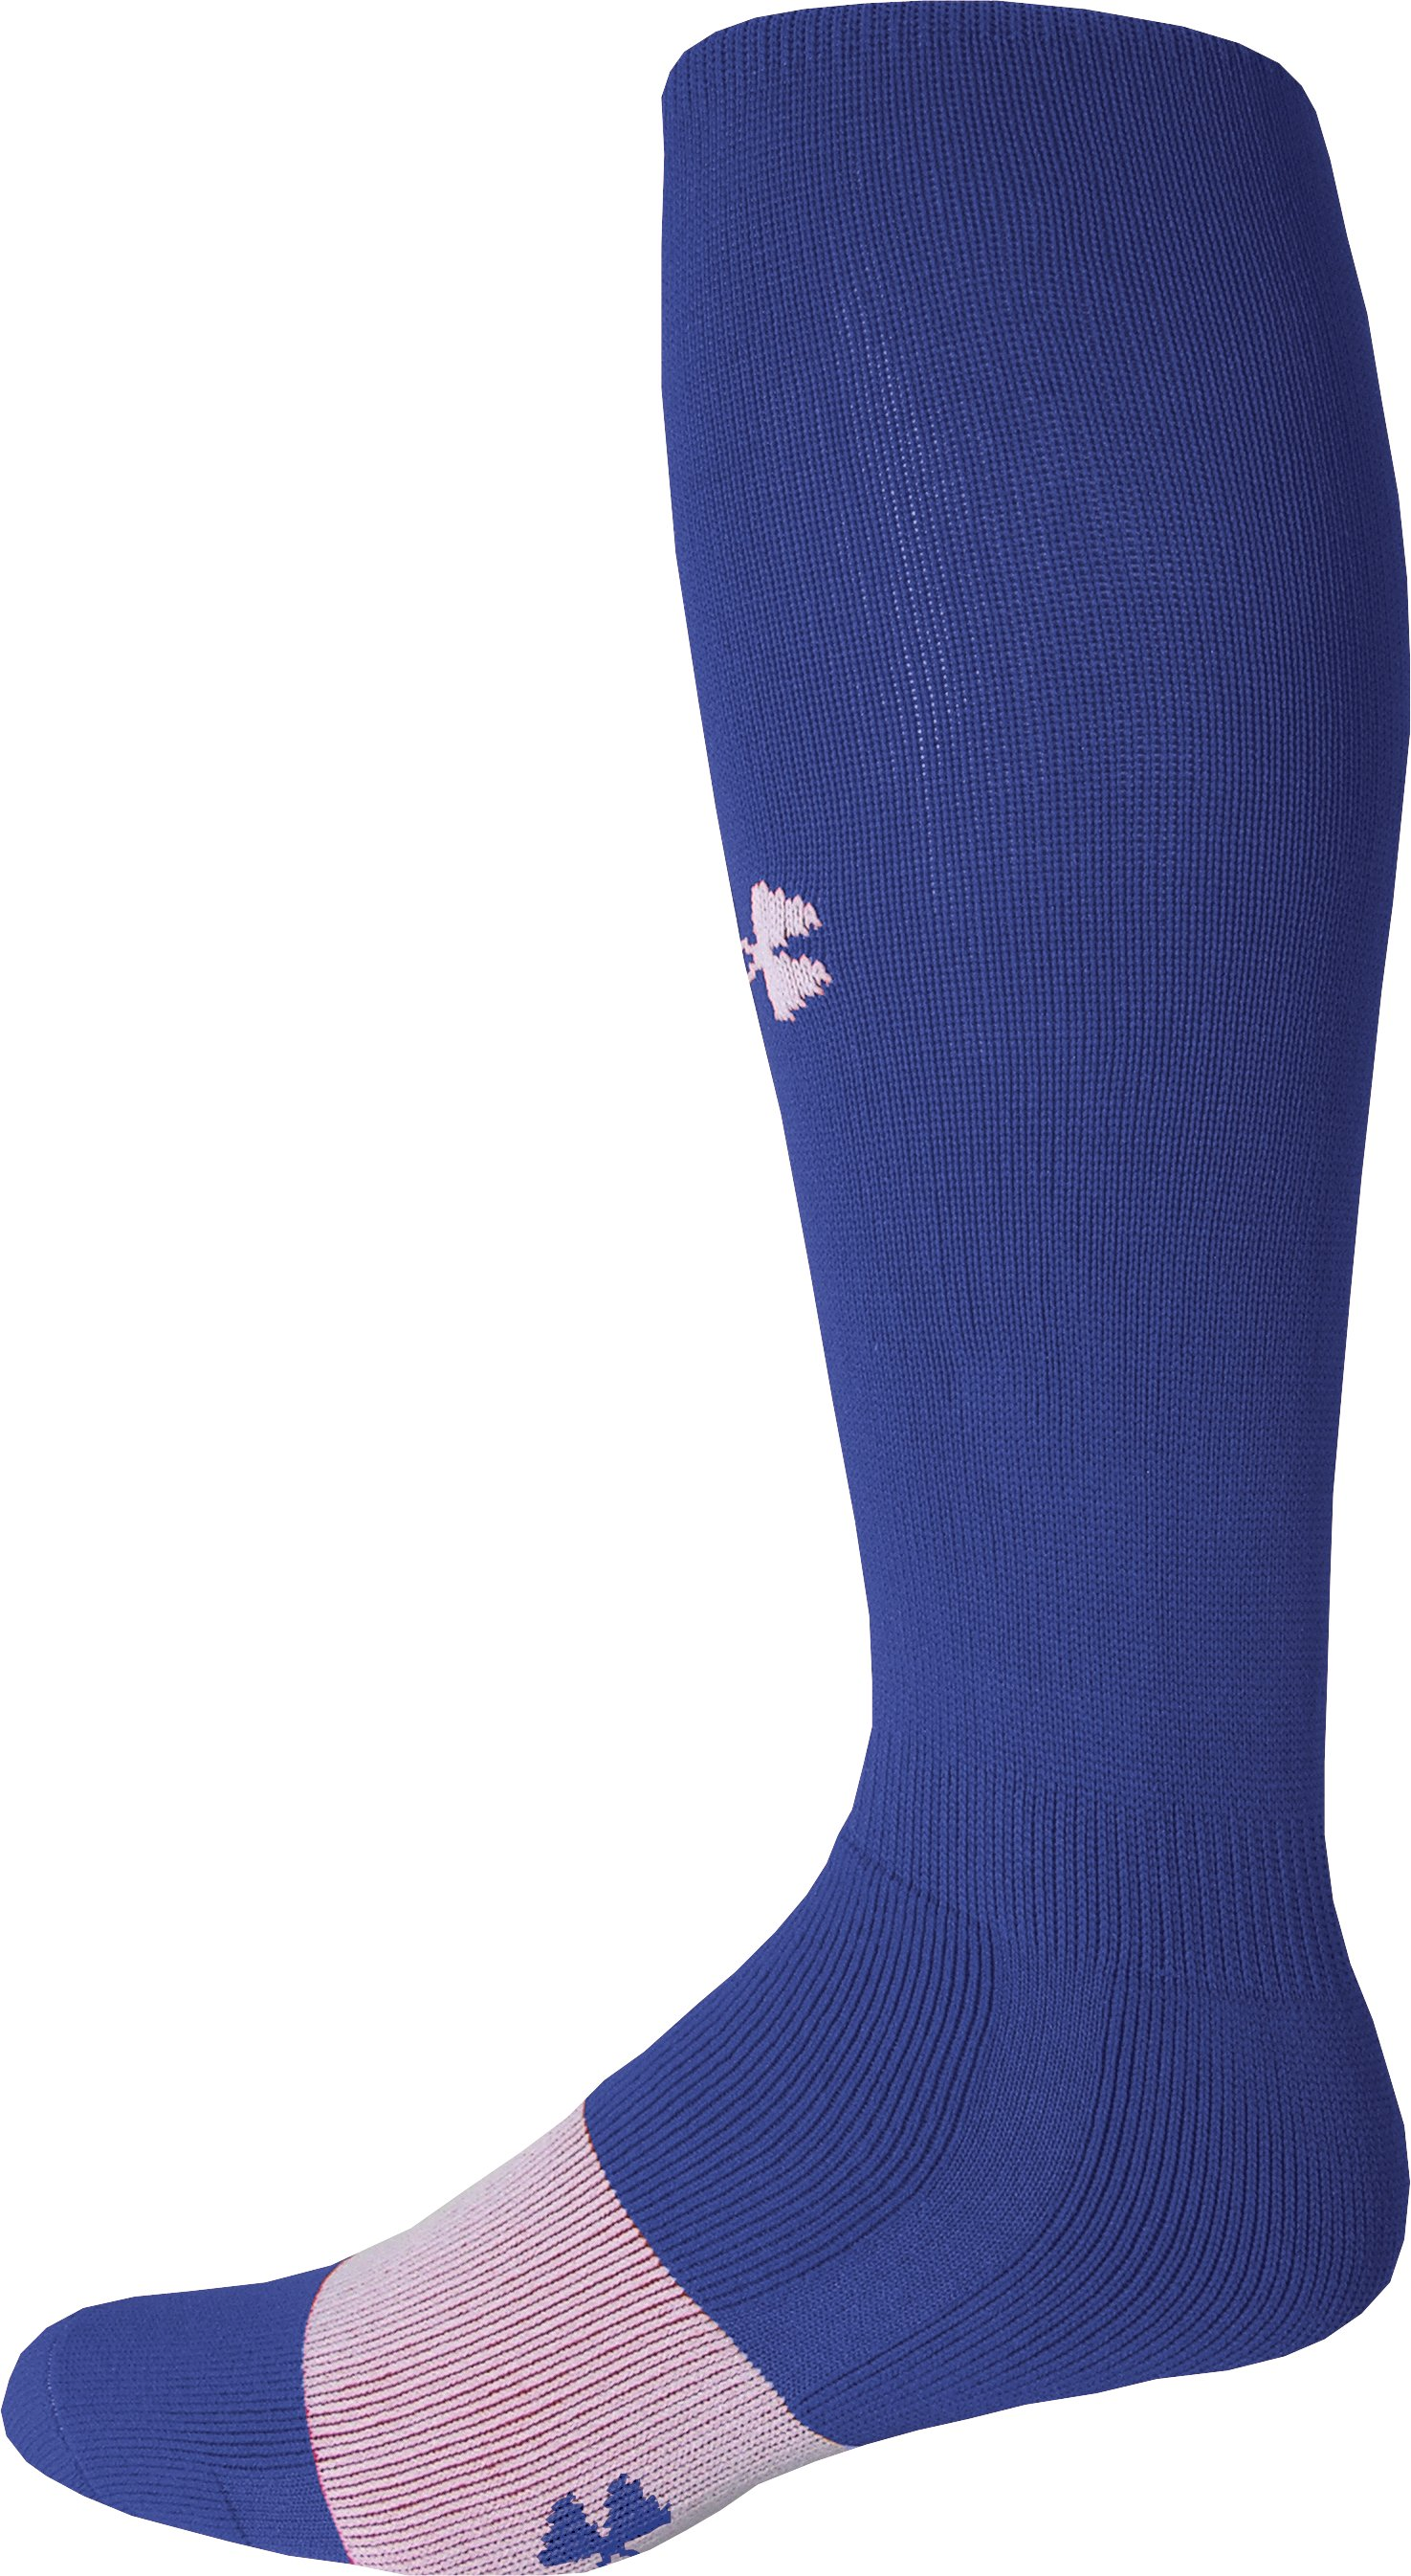 Men's Baseball Sock, Royal,